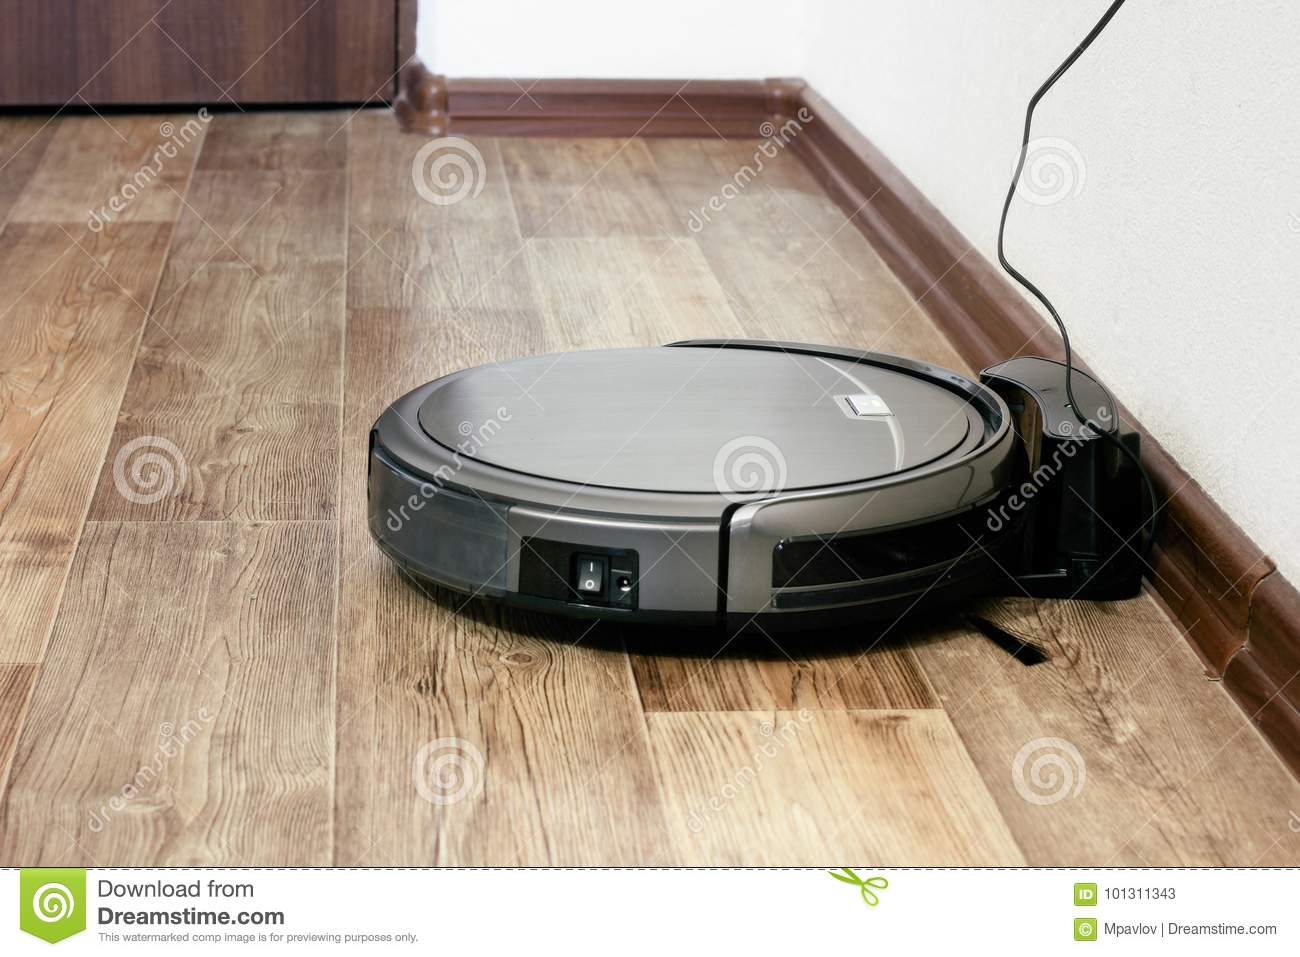 Robot vacuum cleaner for an apartment: how to choose, review, reviews 48